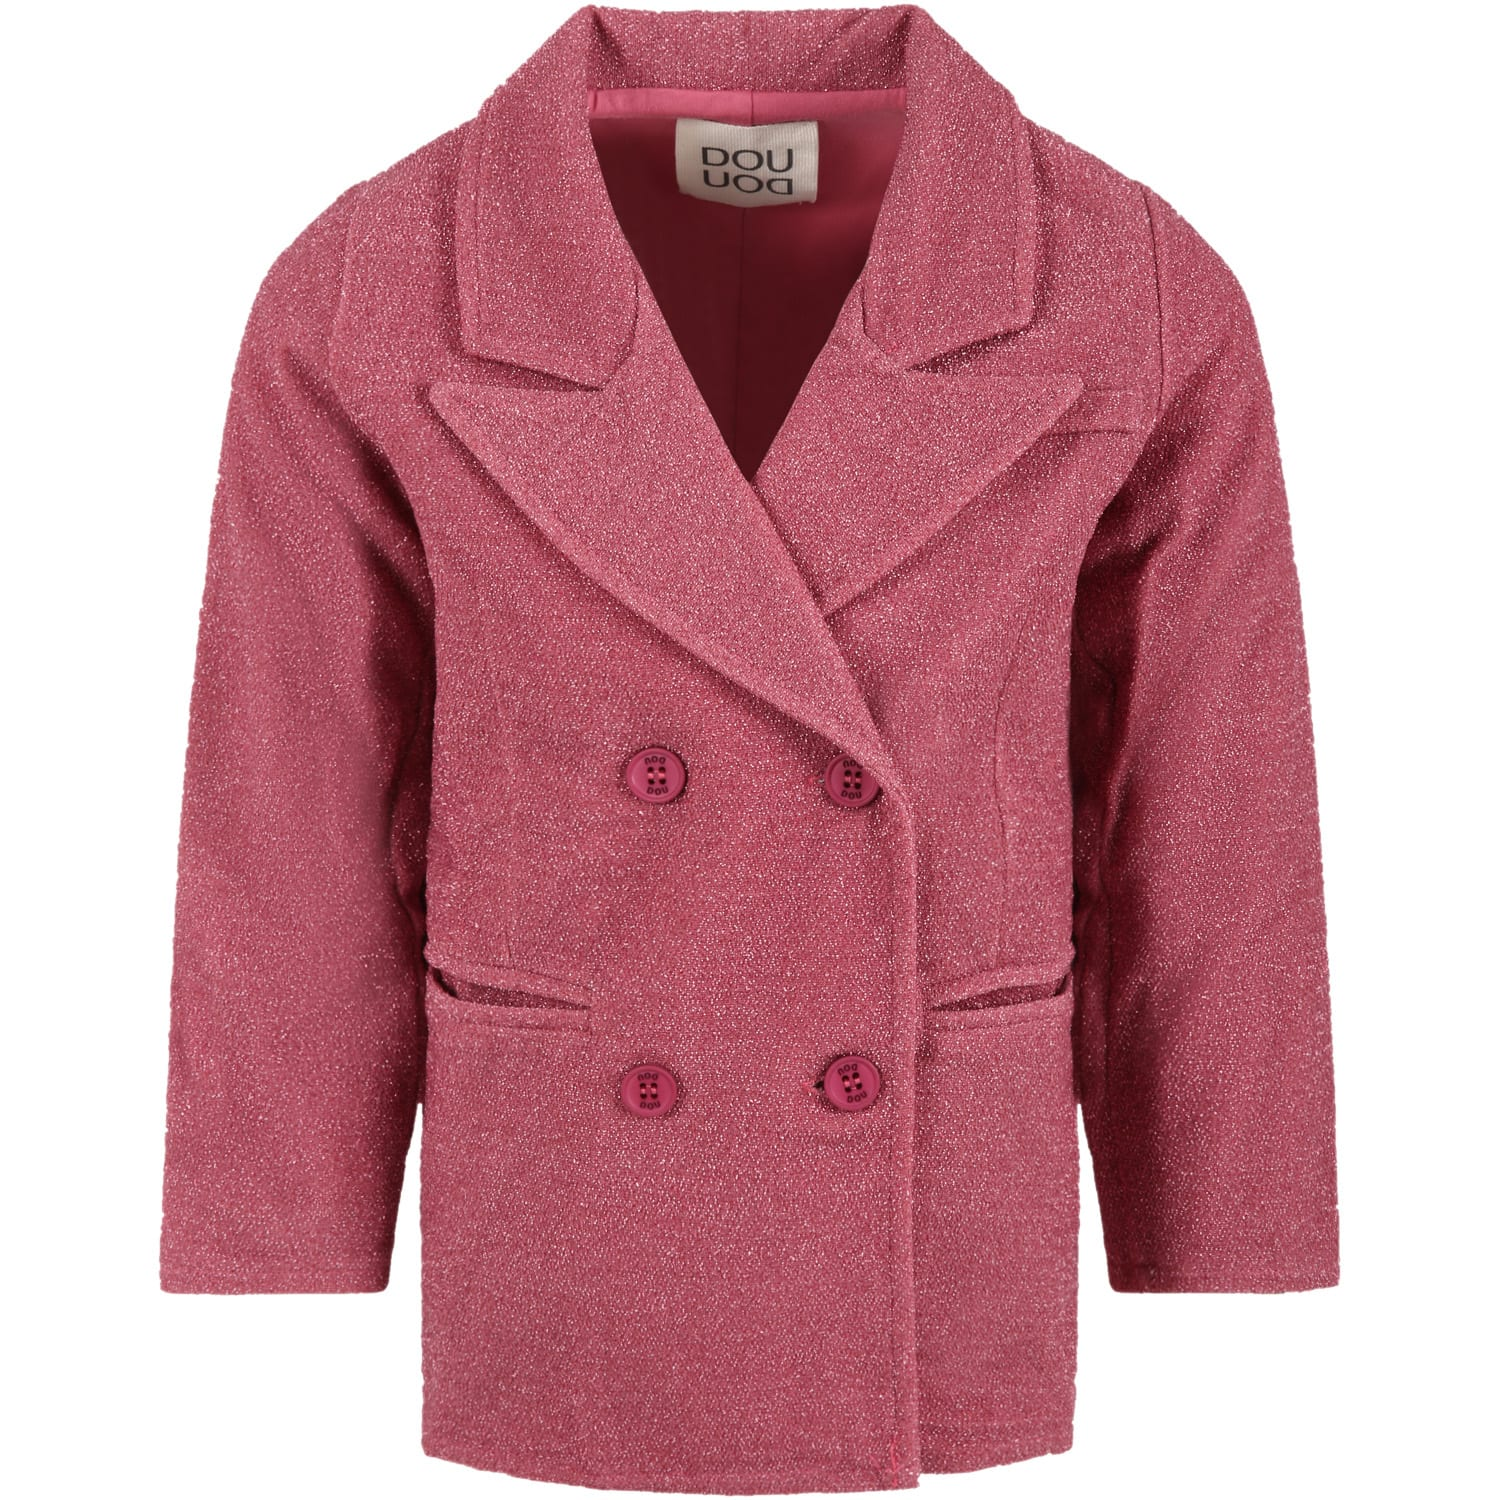 Fuchsia Jacket For Girl With Lurex Details